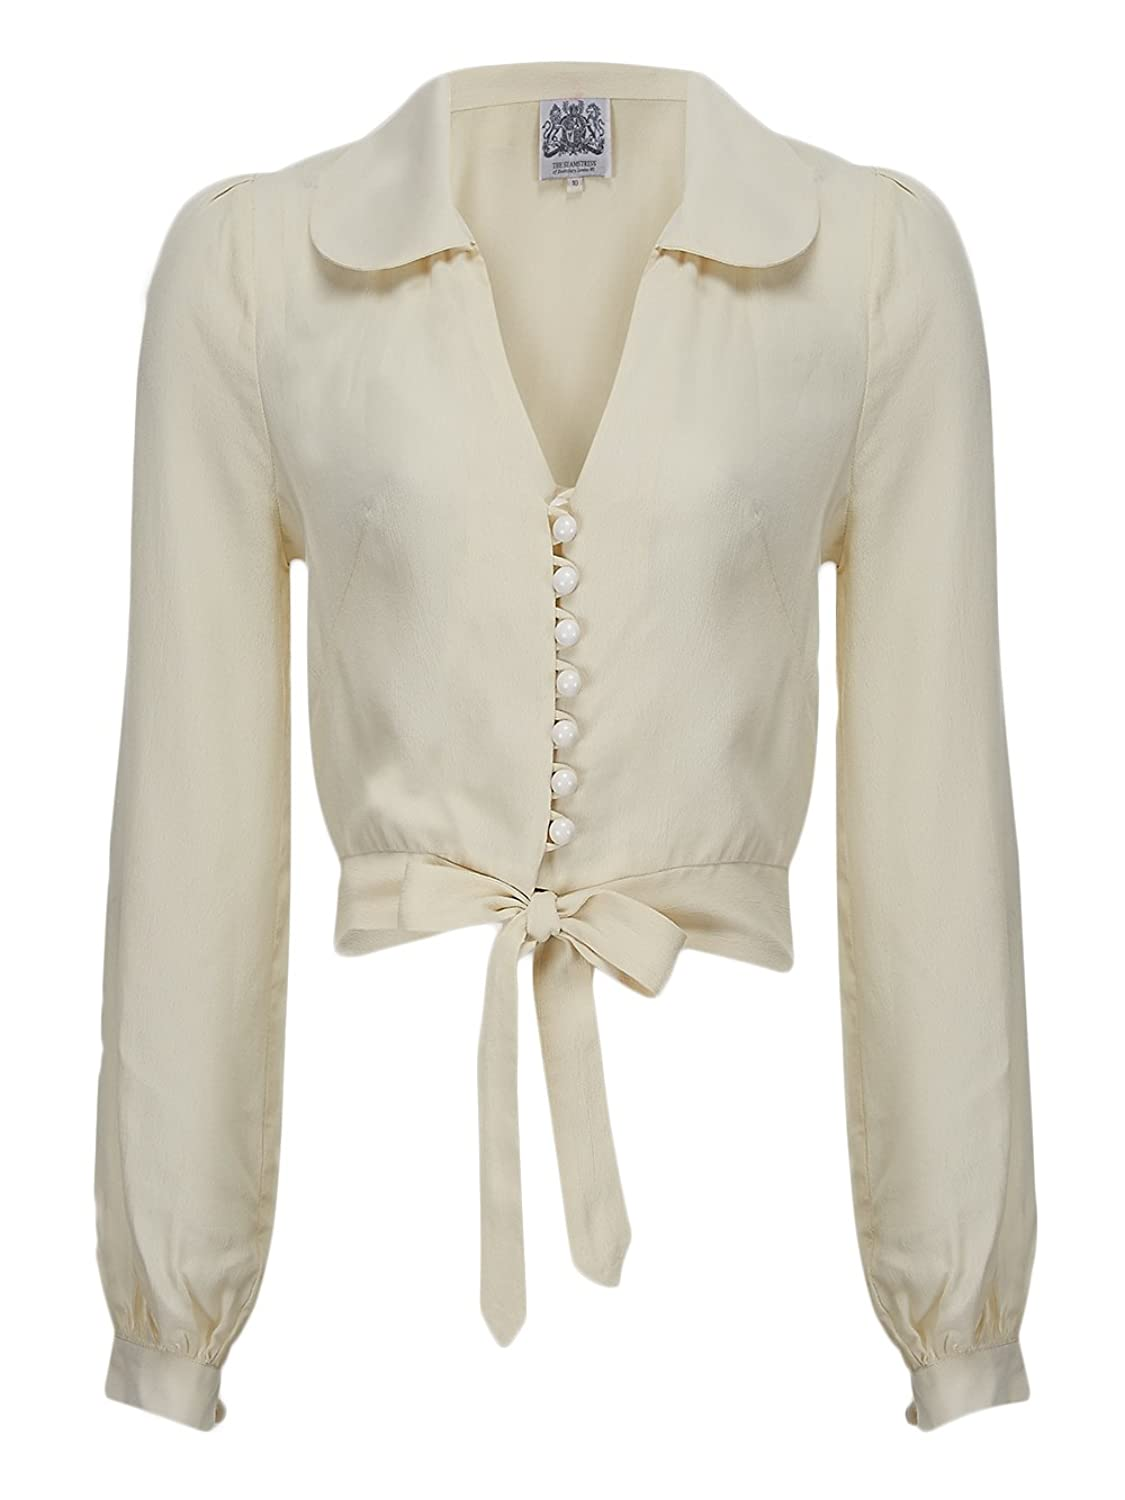 1950s Rockabilly & Pin Up Tops, Blouses, Shirts 1940s/50s Authentic Vintage Inspired Button Up Tie Down Blouse in Cream £39.00 AT vintagedancer.com